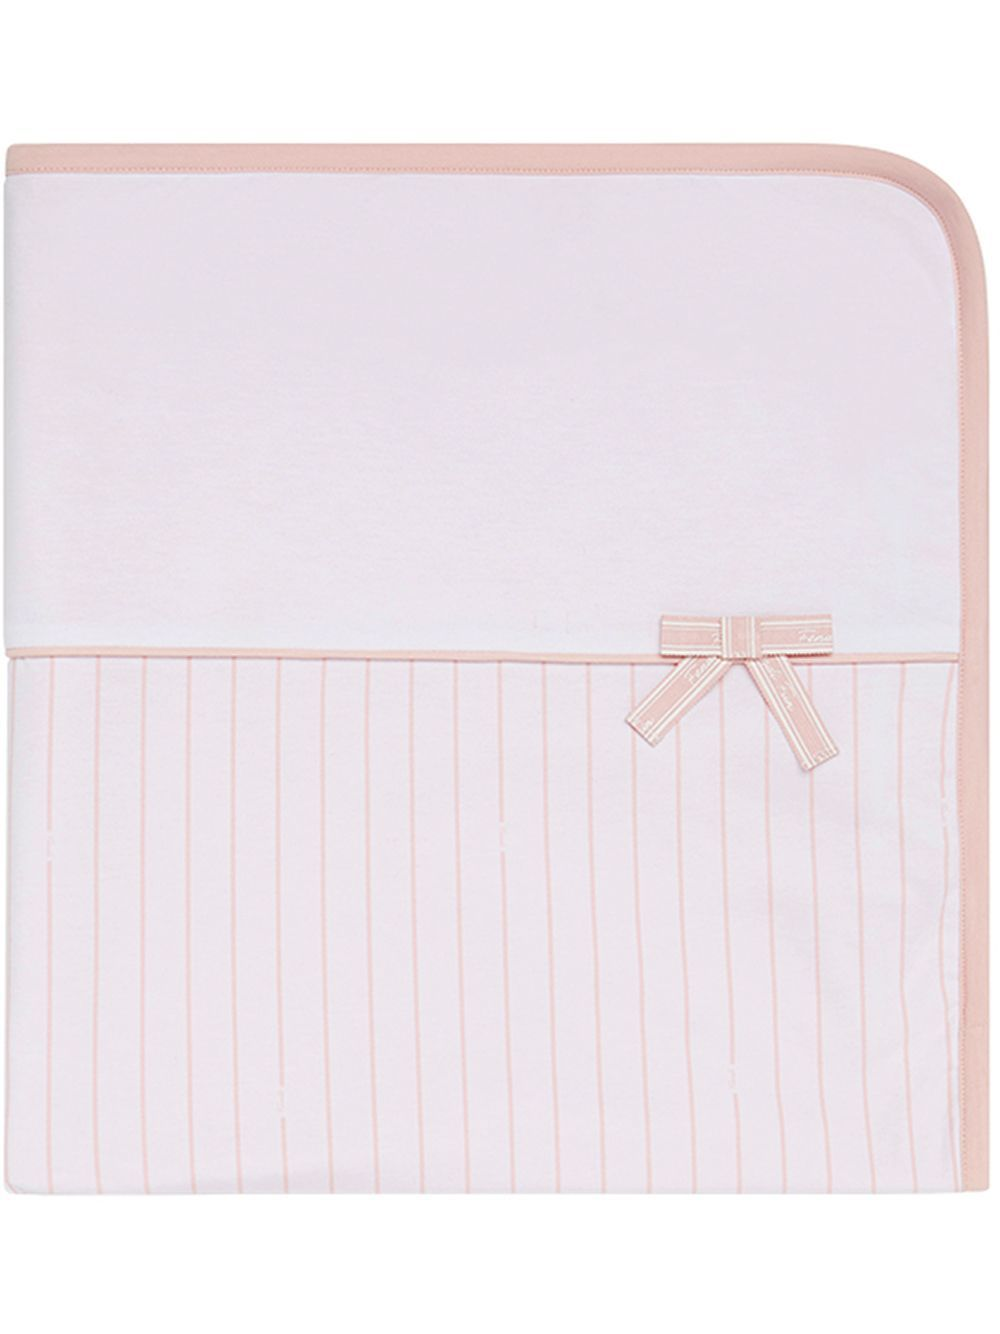 BFJ027 / FOUJ2 PINK/WHT / FENDI STRIPED BLANKET W/LOGO BOW